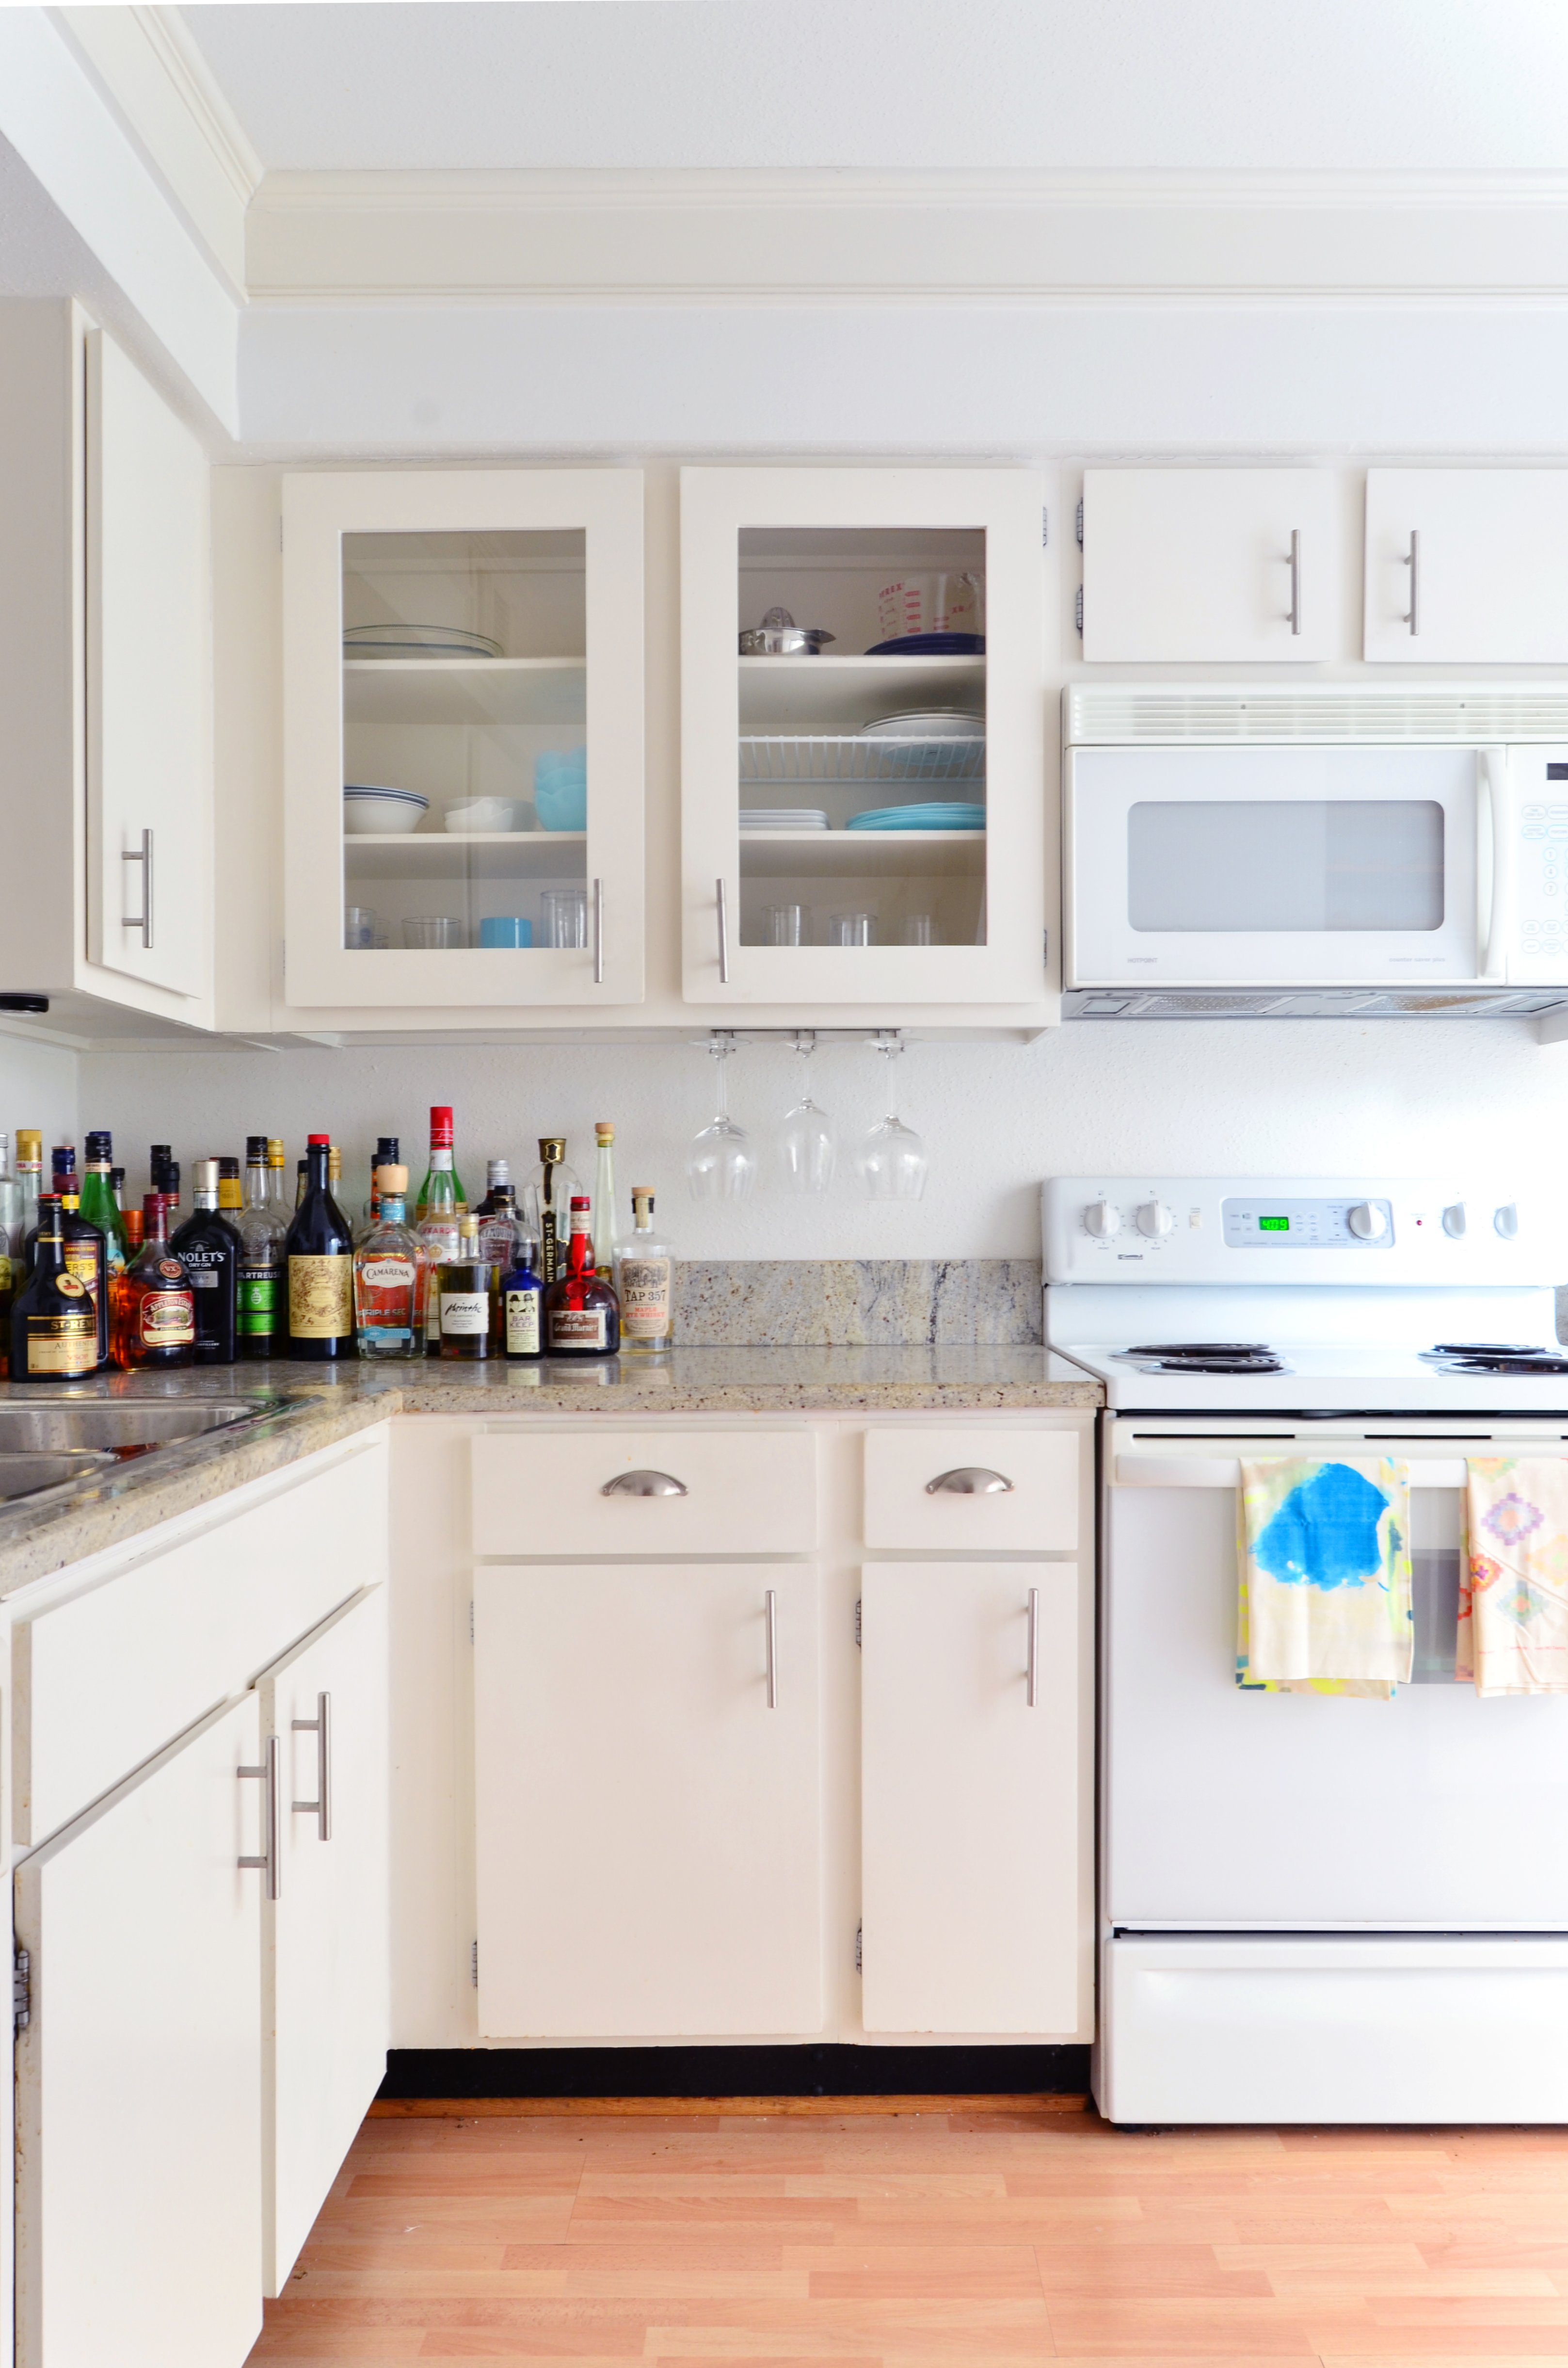 Glass Front Kitchen Cabinet Doors - Pros, Cons | Apartment ...